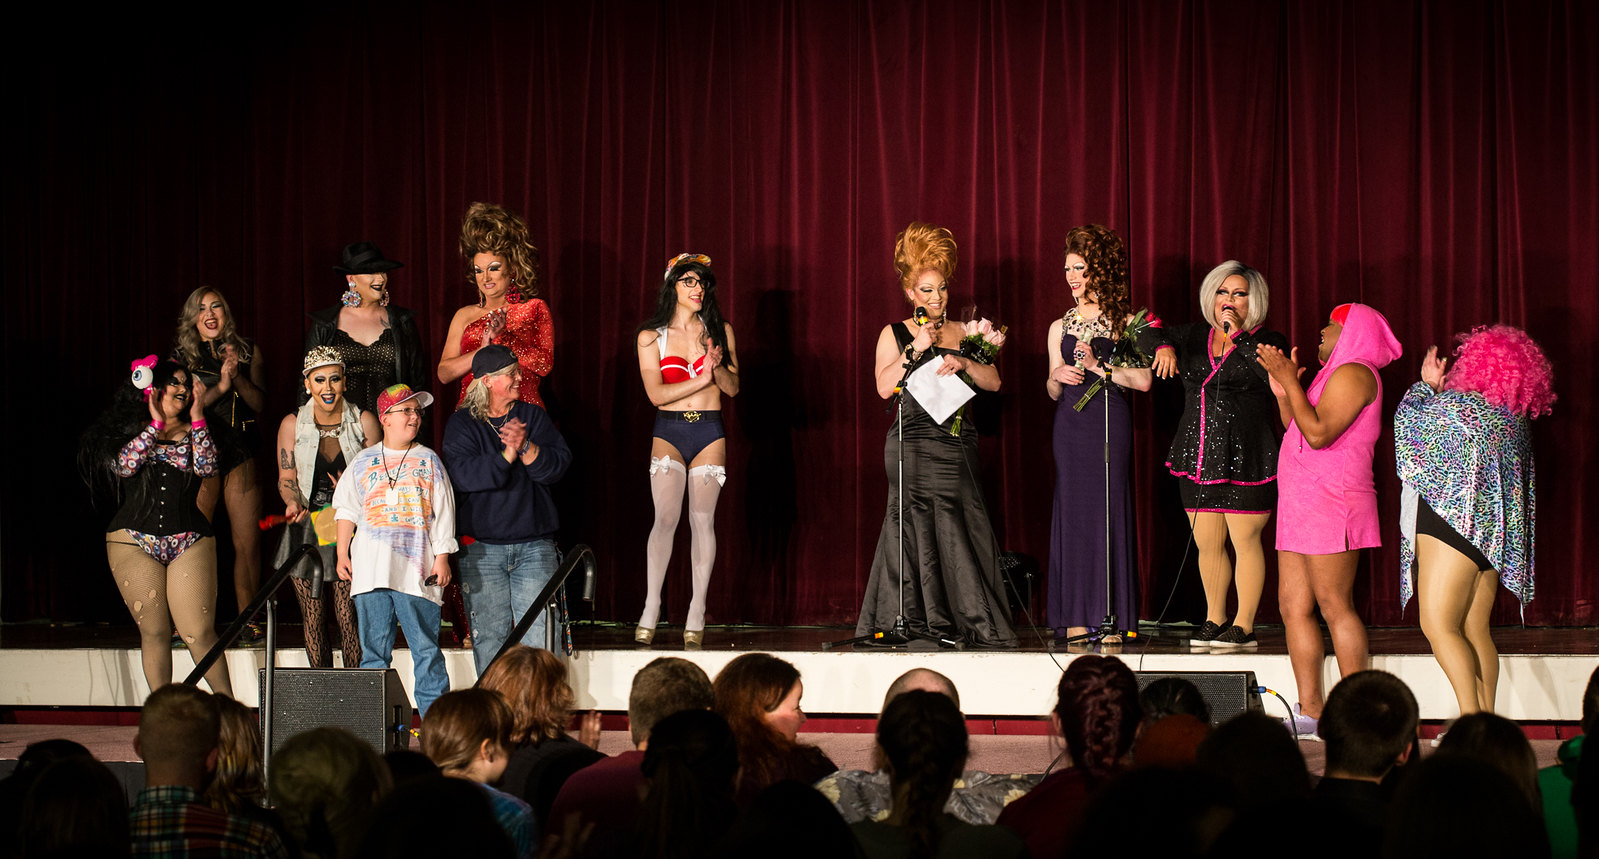 The Drag Queens and Kings of HokiePRIDE's Spring 2016 Charity Drag Show. Photo by David Greenawald